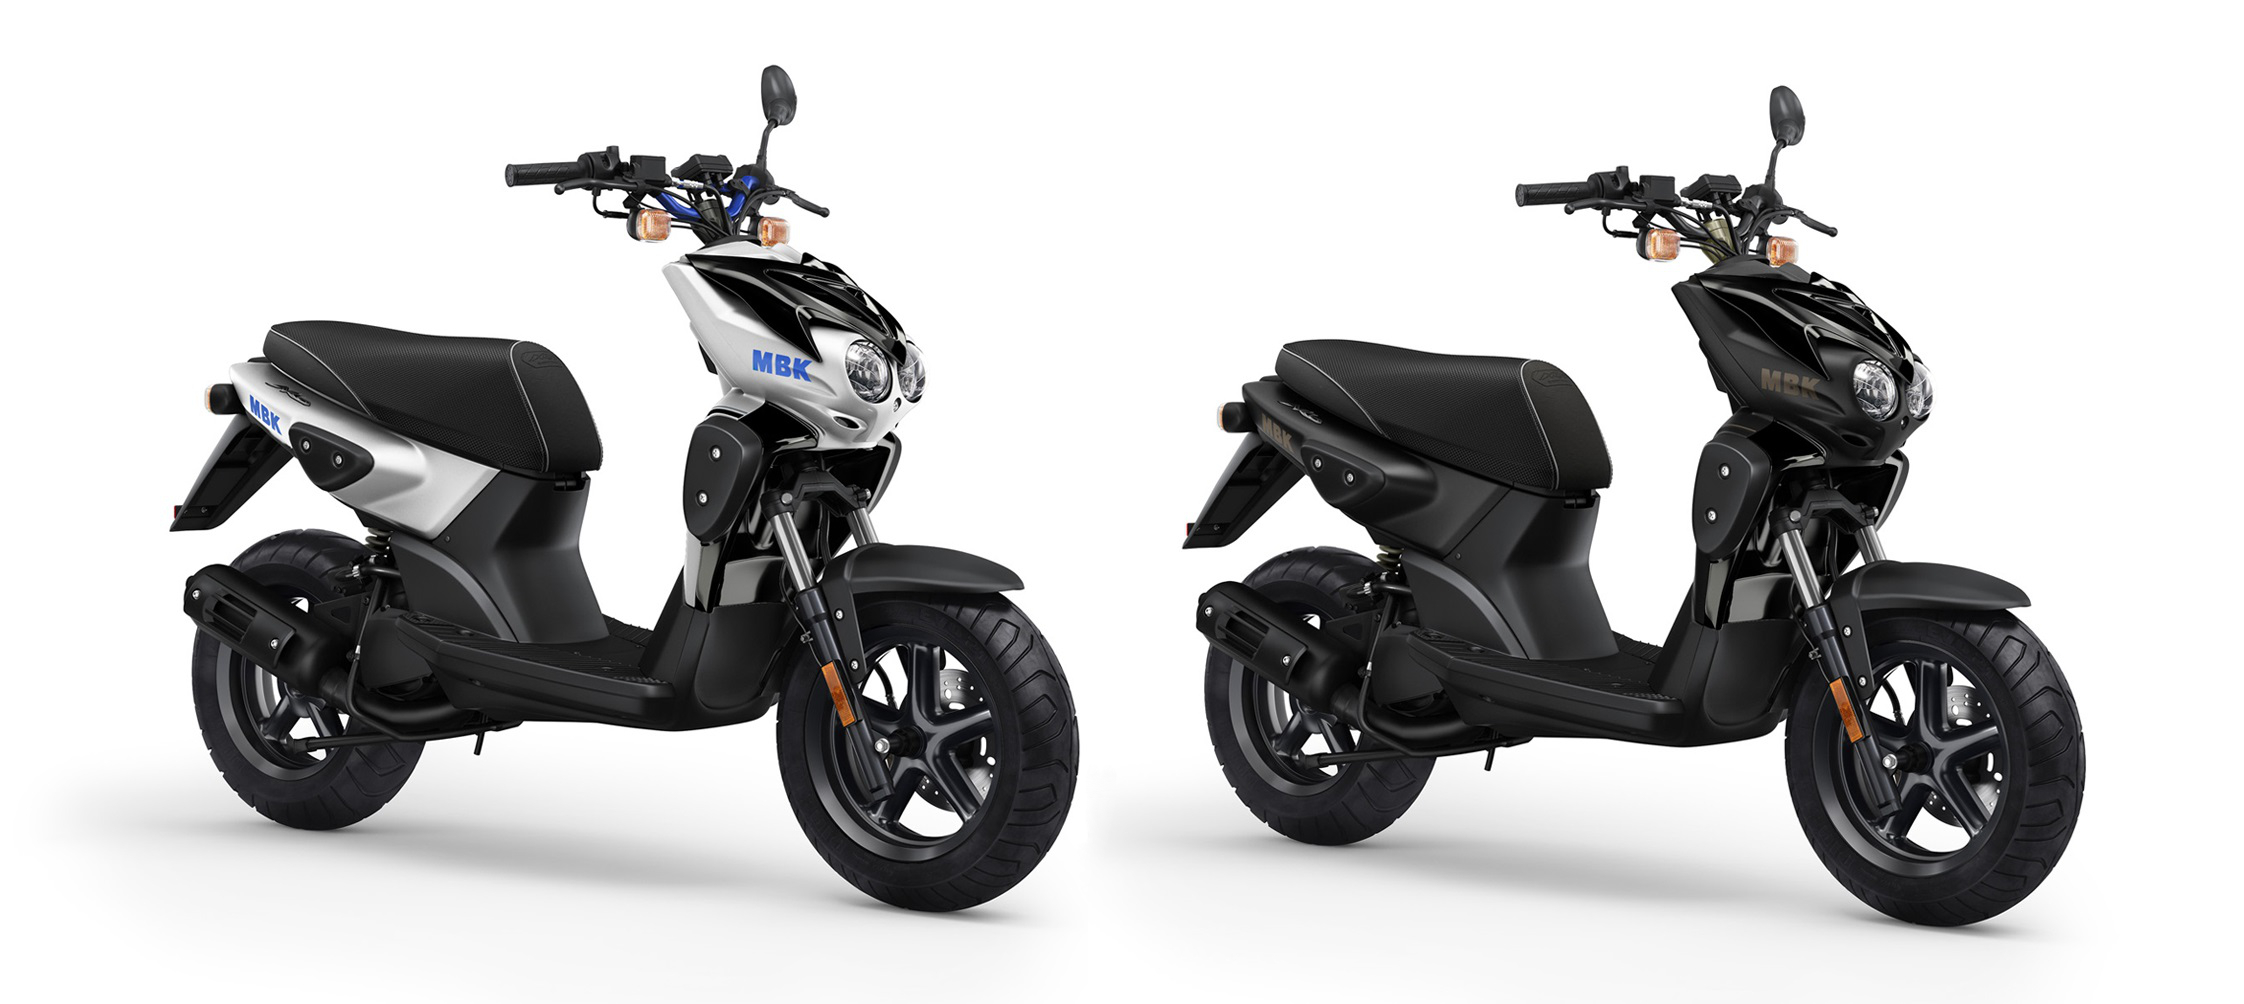 coloris mbk stunt naked 2016 actualit s scooter par scooter mag. Black Bedroom Furniture Sets. Home Design Ideas